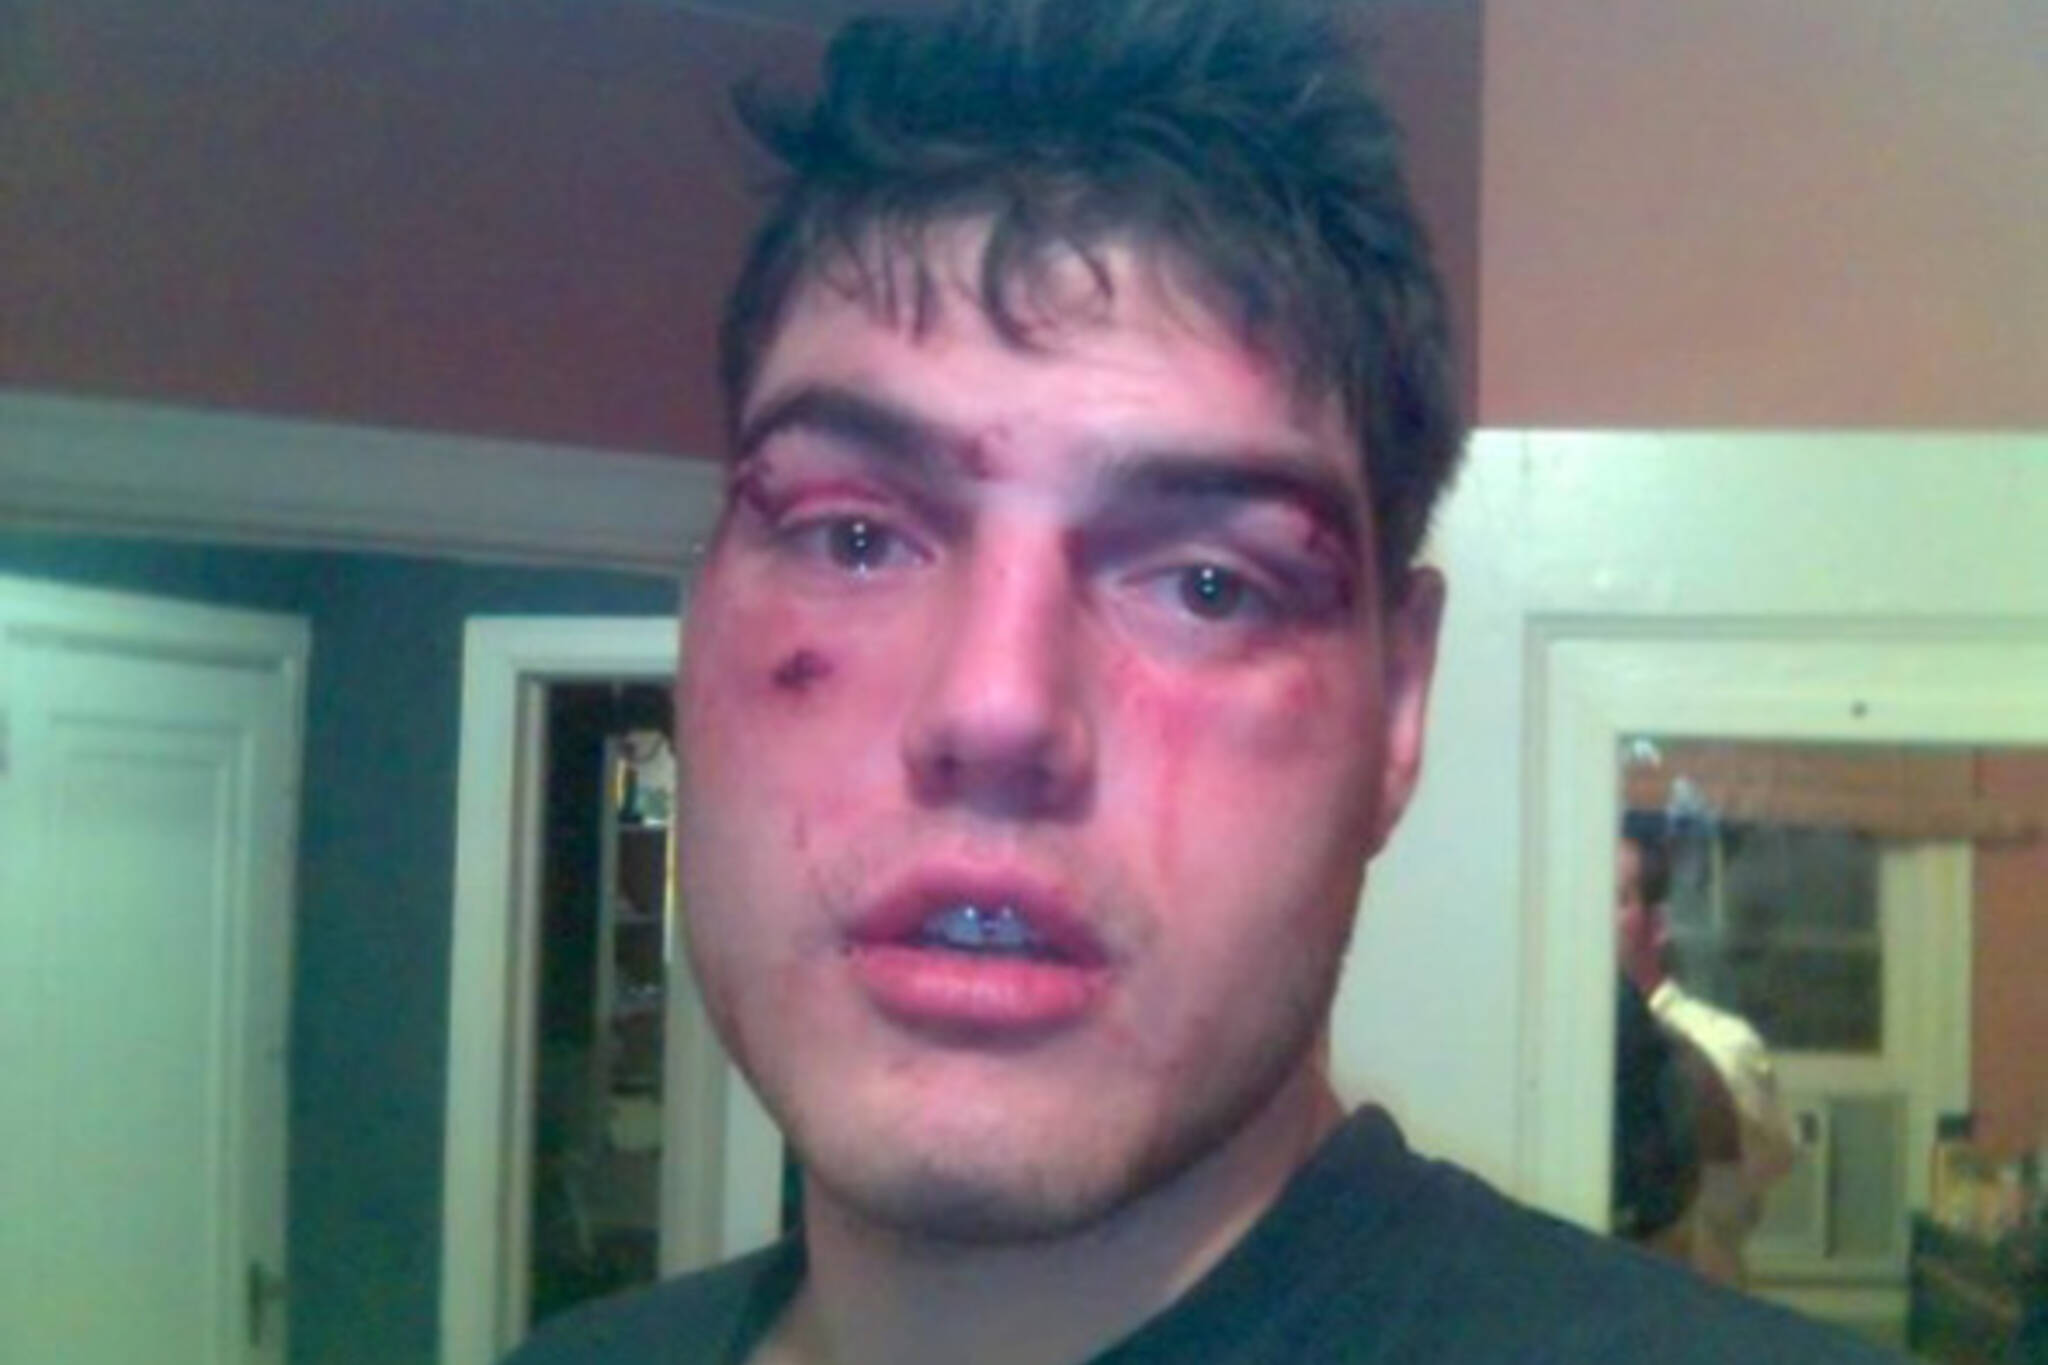 Toronto nightclub bouncers allegedly beat up Barry Ward